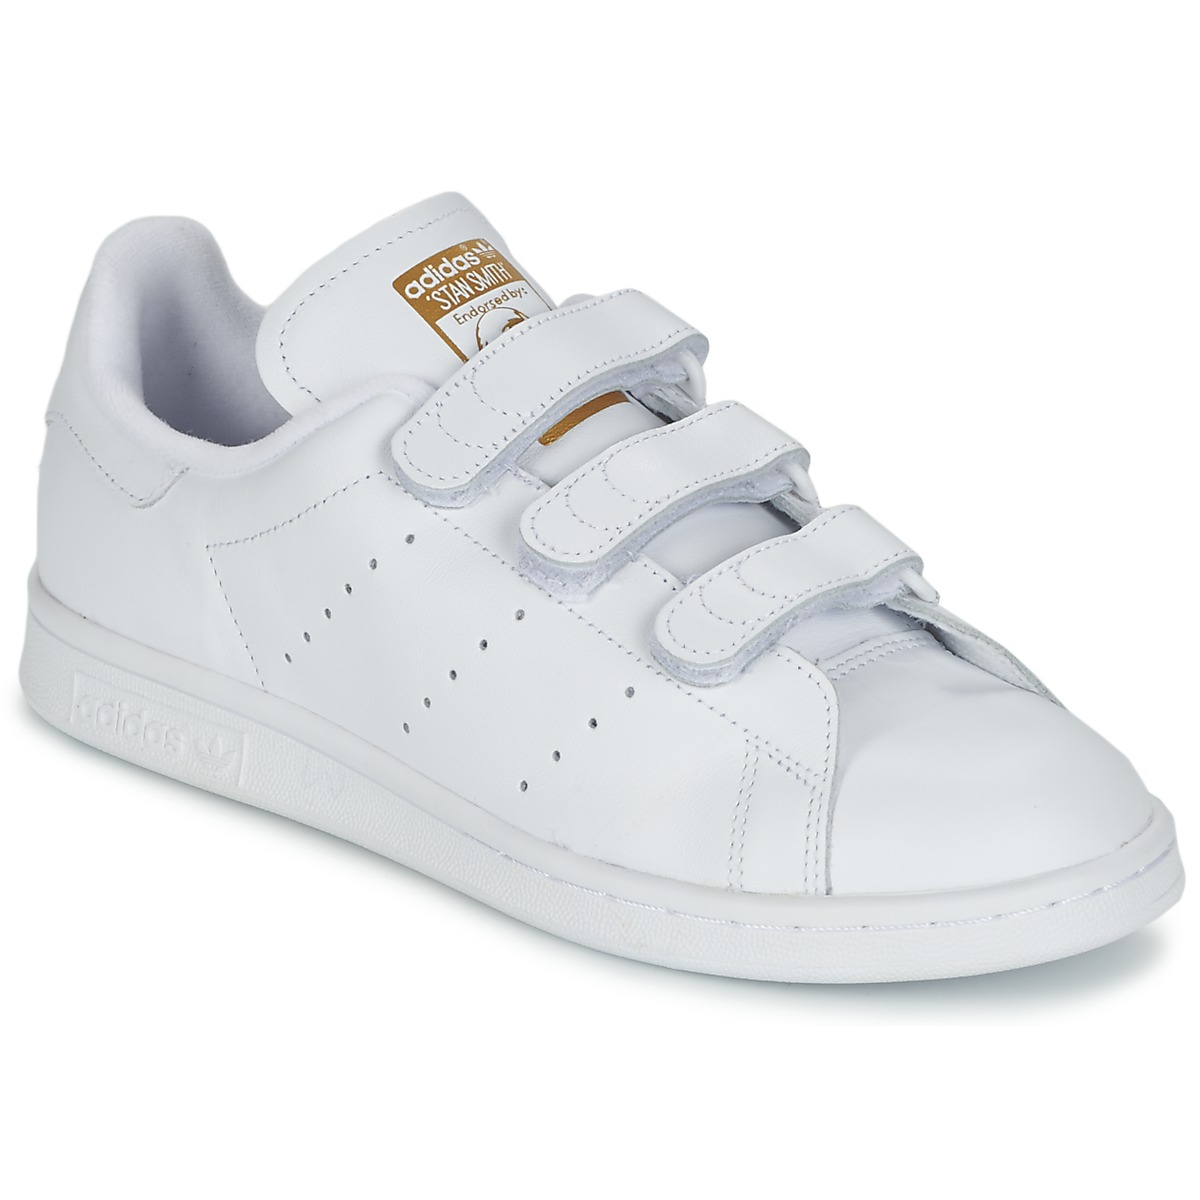 baskets basses adidas originals stan smith cf blanc livraison gratuite avec. Black Bedroom Furniture Sets. Home Design Ideas